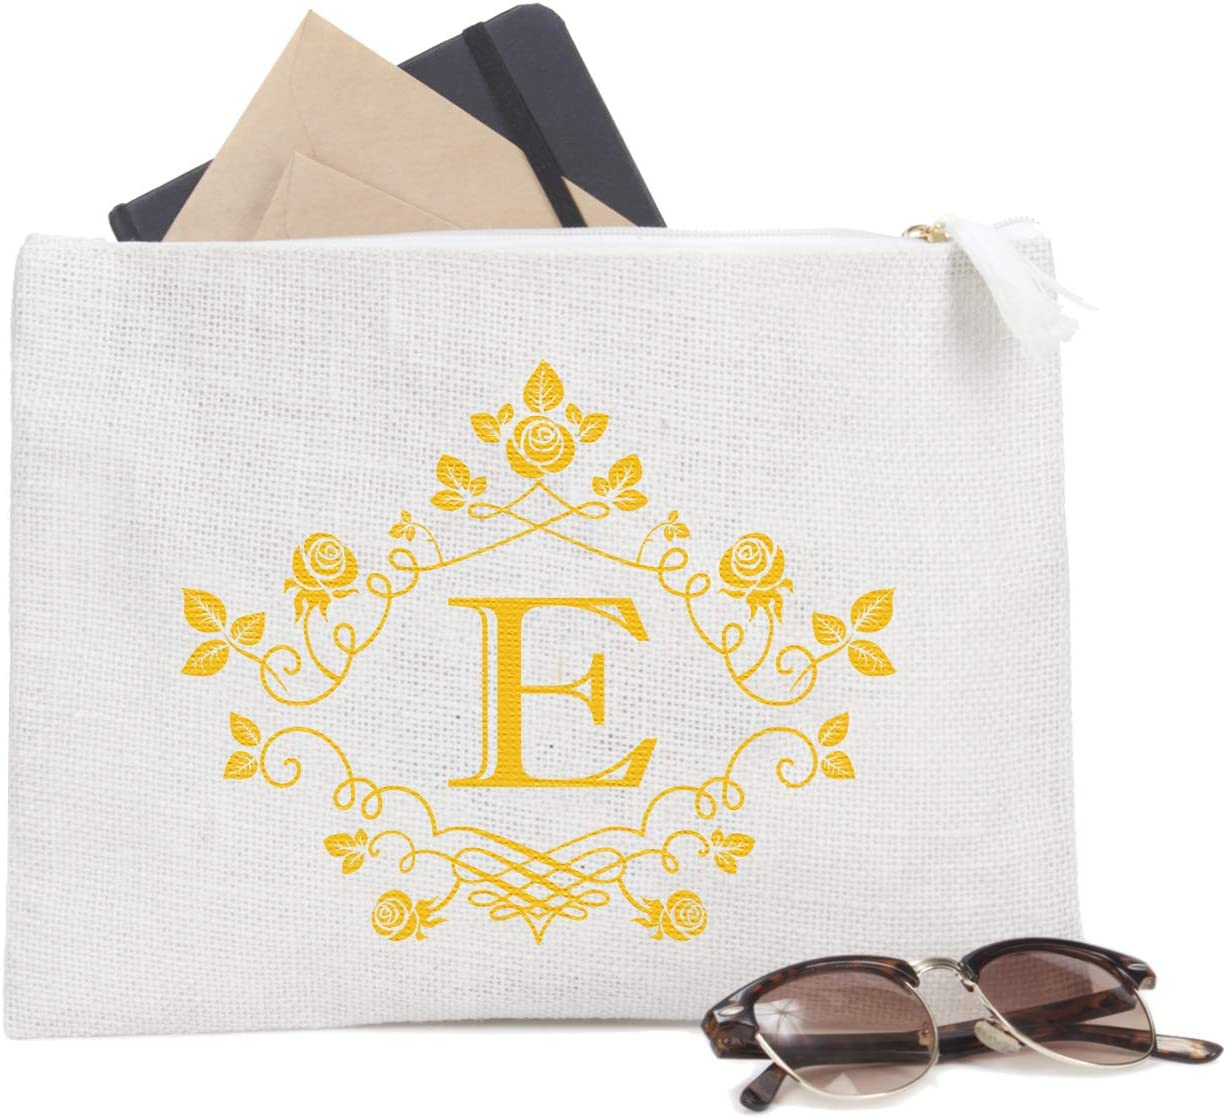 ElegantPark E Initial Monogram Personalized Travel Makeup Cosmetic Bag Jute Clutch Pouch Gifts with Zipper